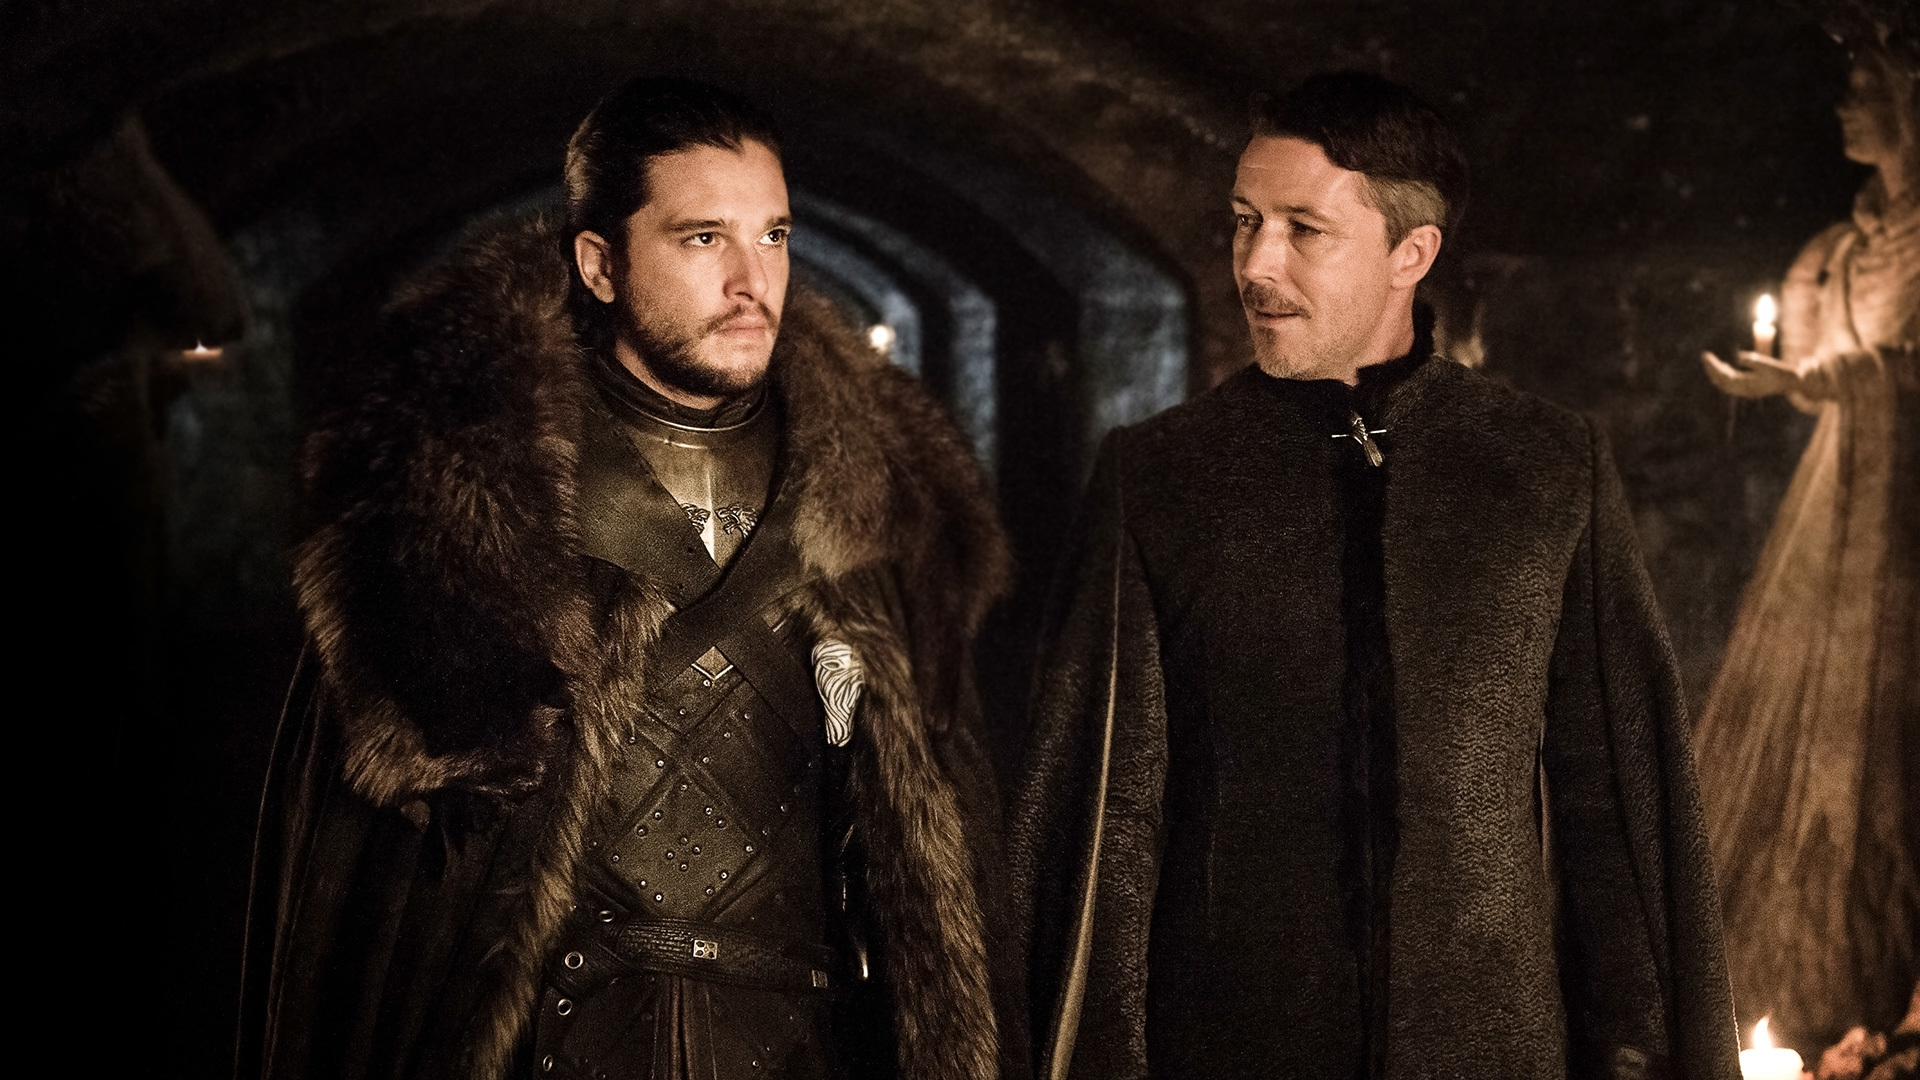 Find somebody who looks at your enemies the way Jon Snow looks at Littlefinger.